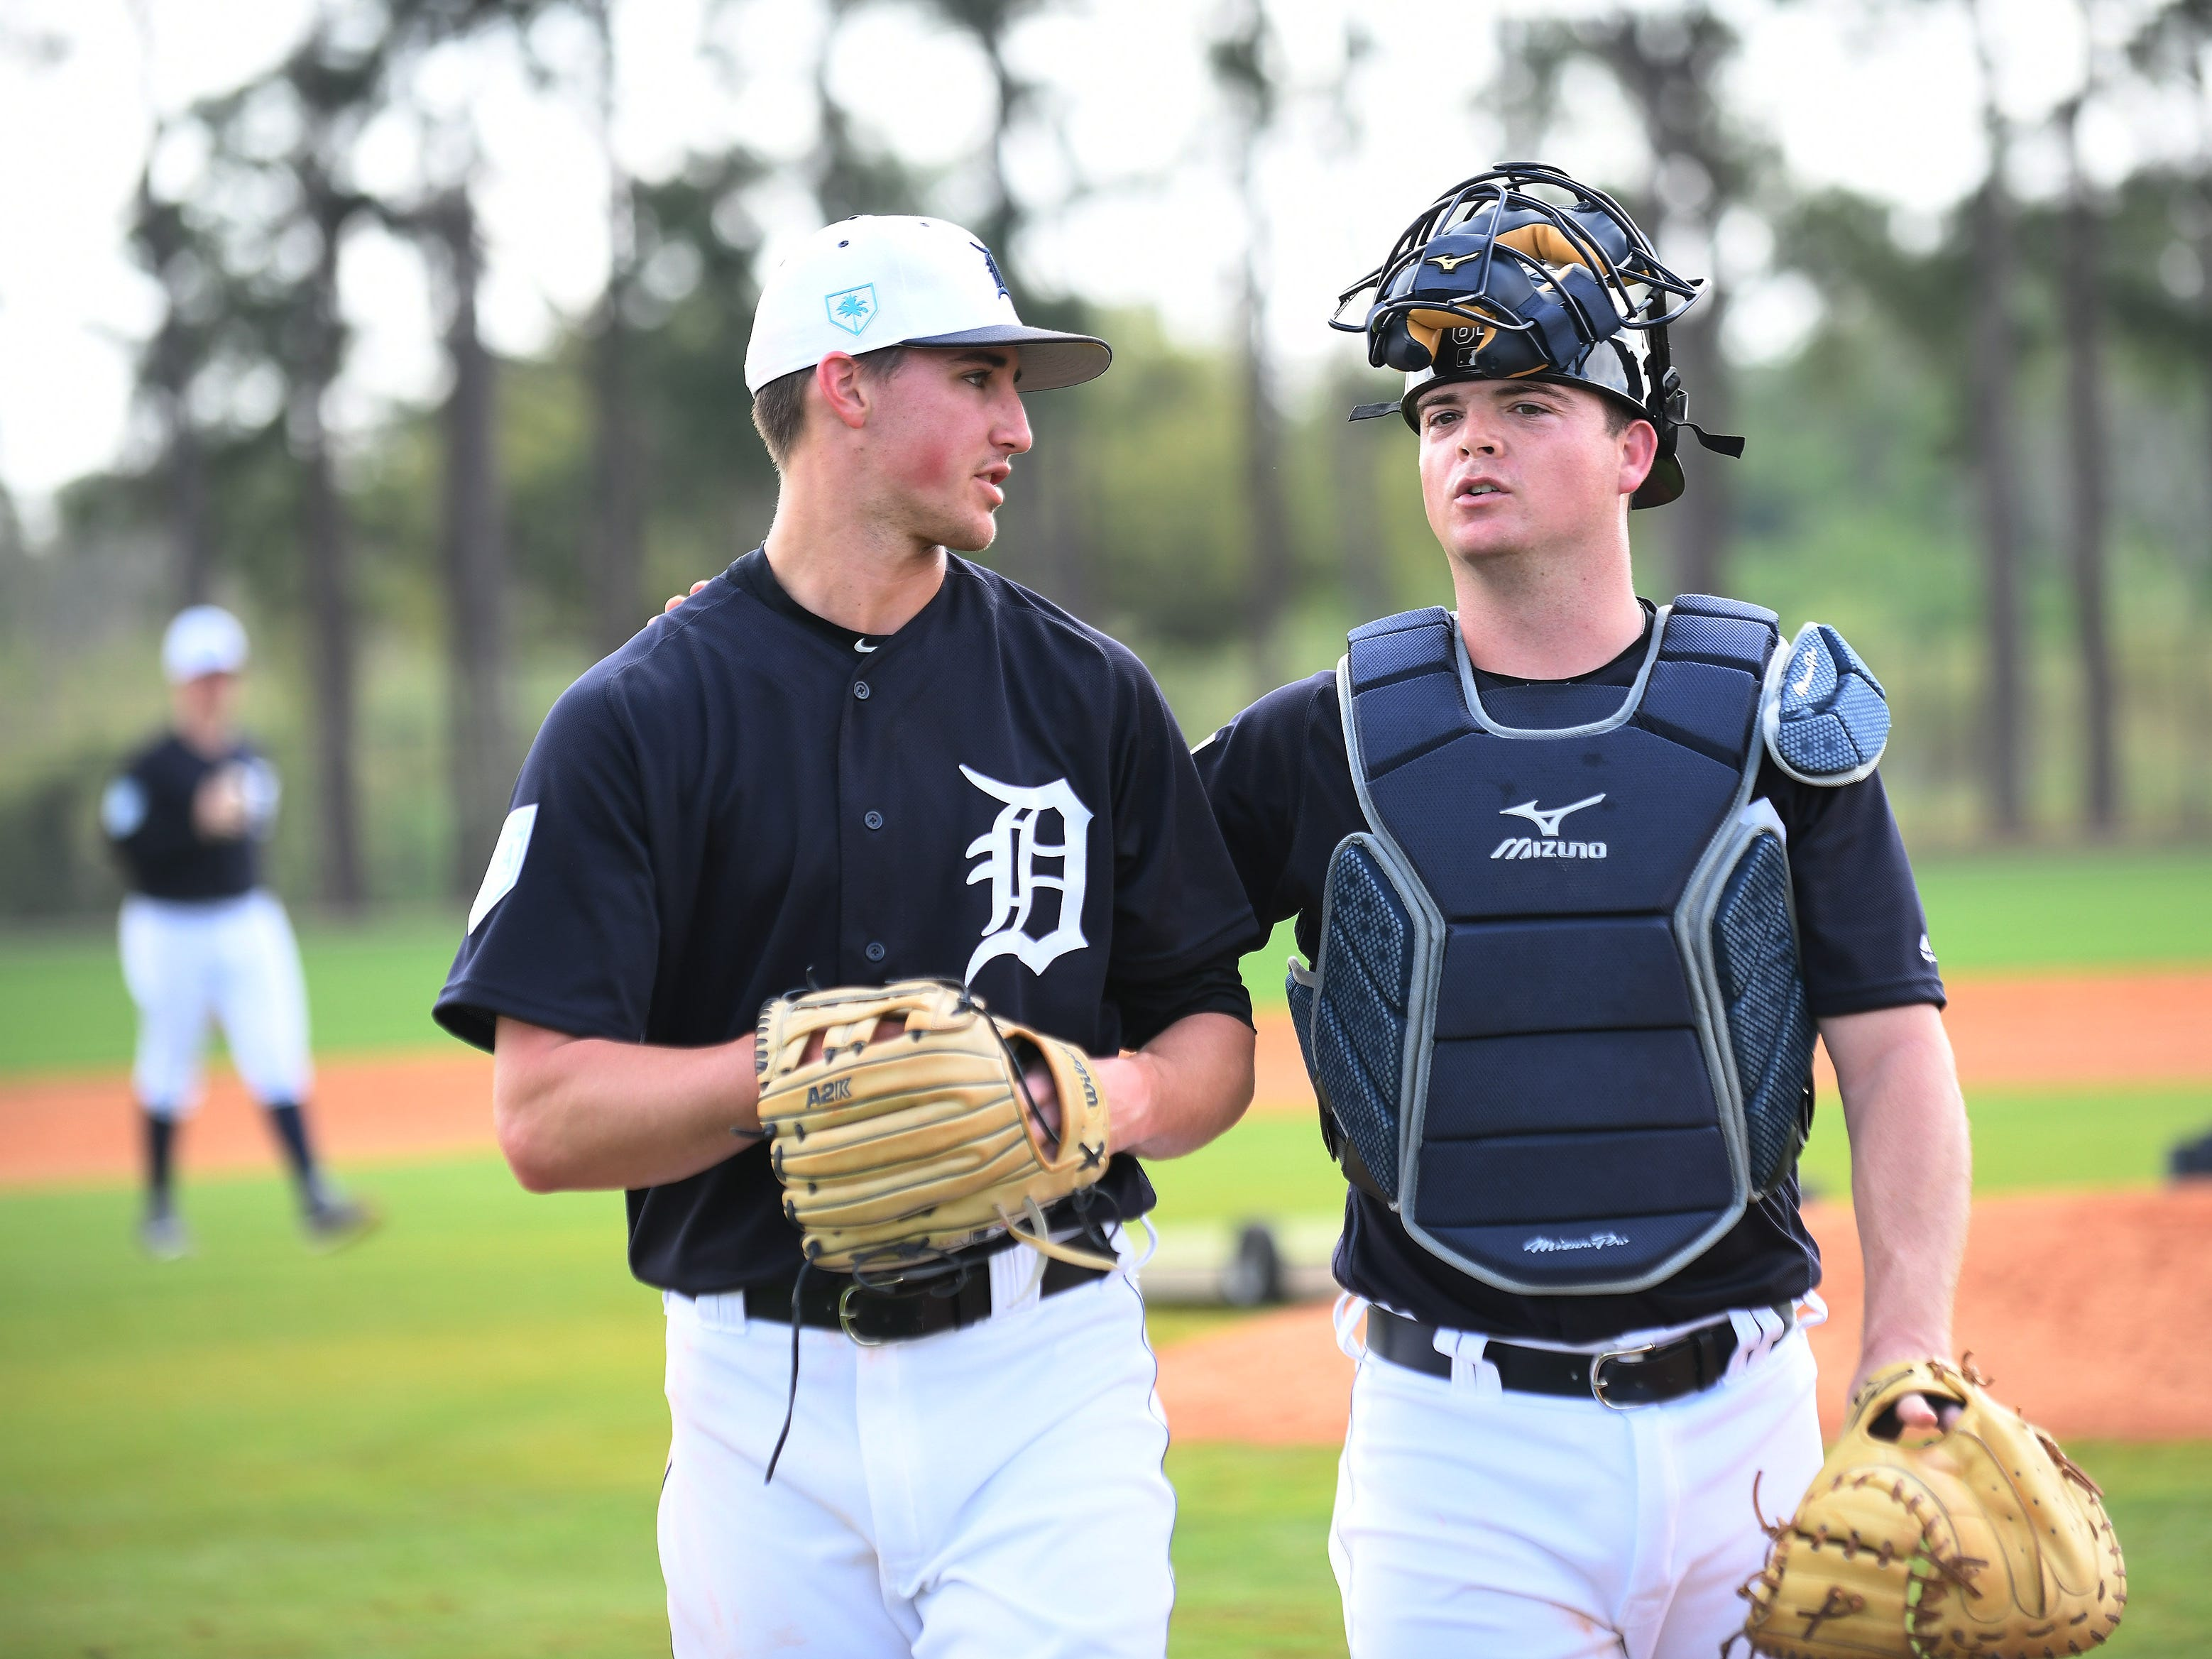 Non-roster catcher Jake Rogers, right, talks with pitcher Zac Reininger, left, after Reininger pitched live batting practice.